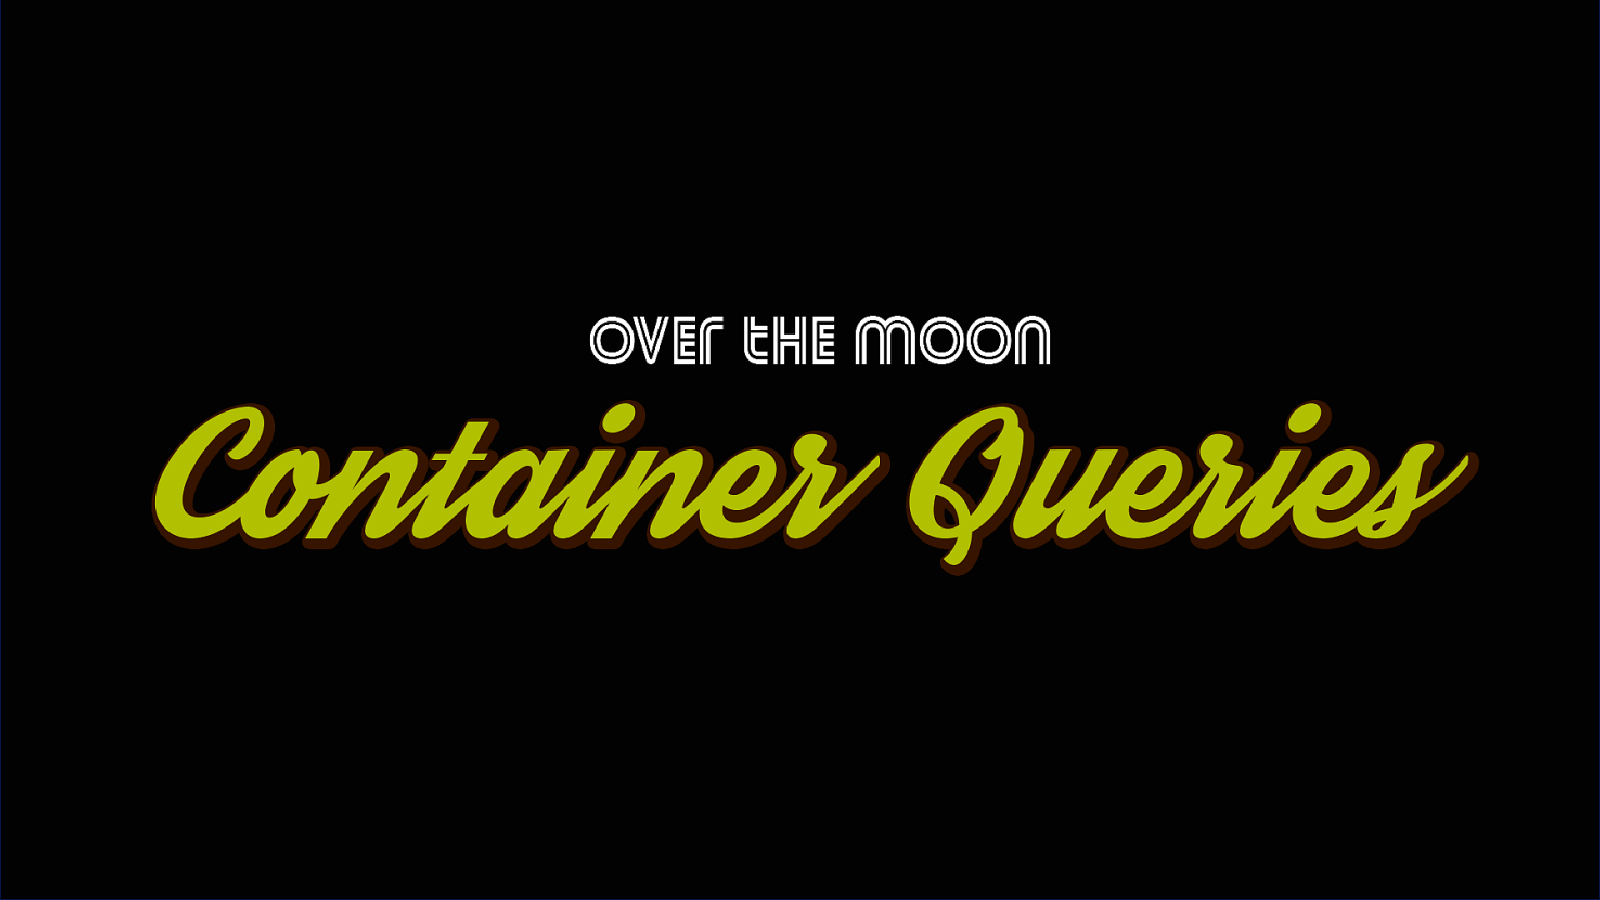 Over the moon for container queries